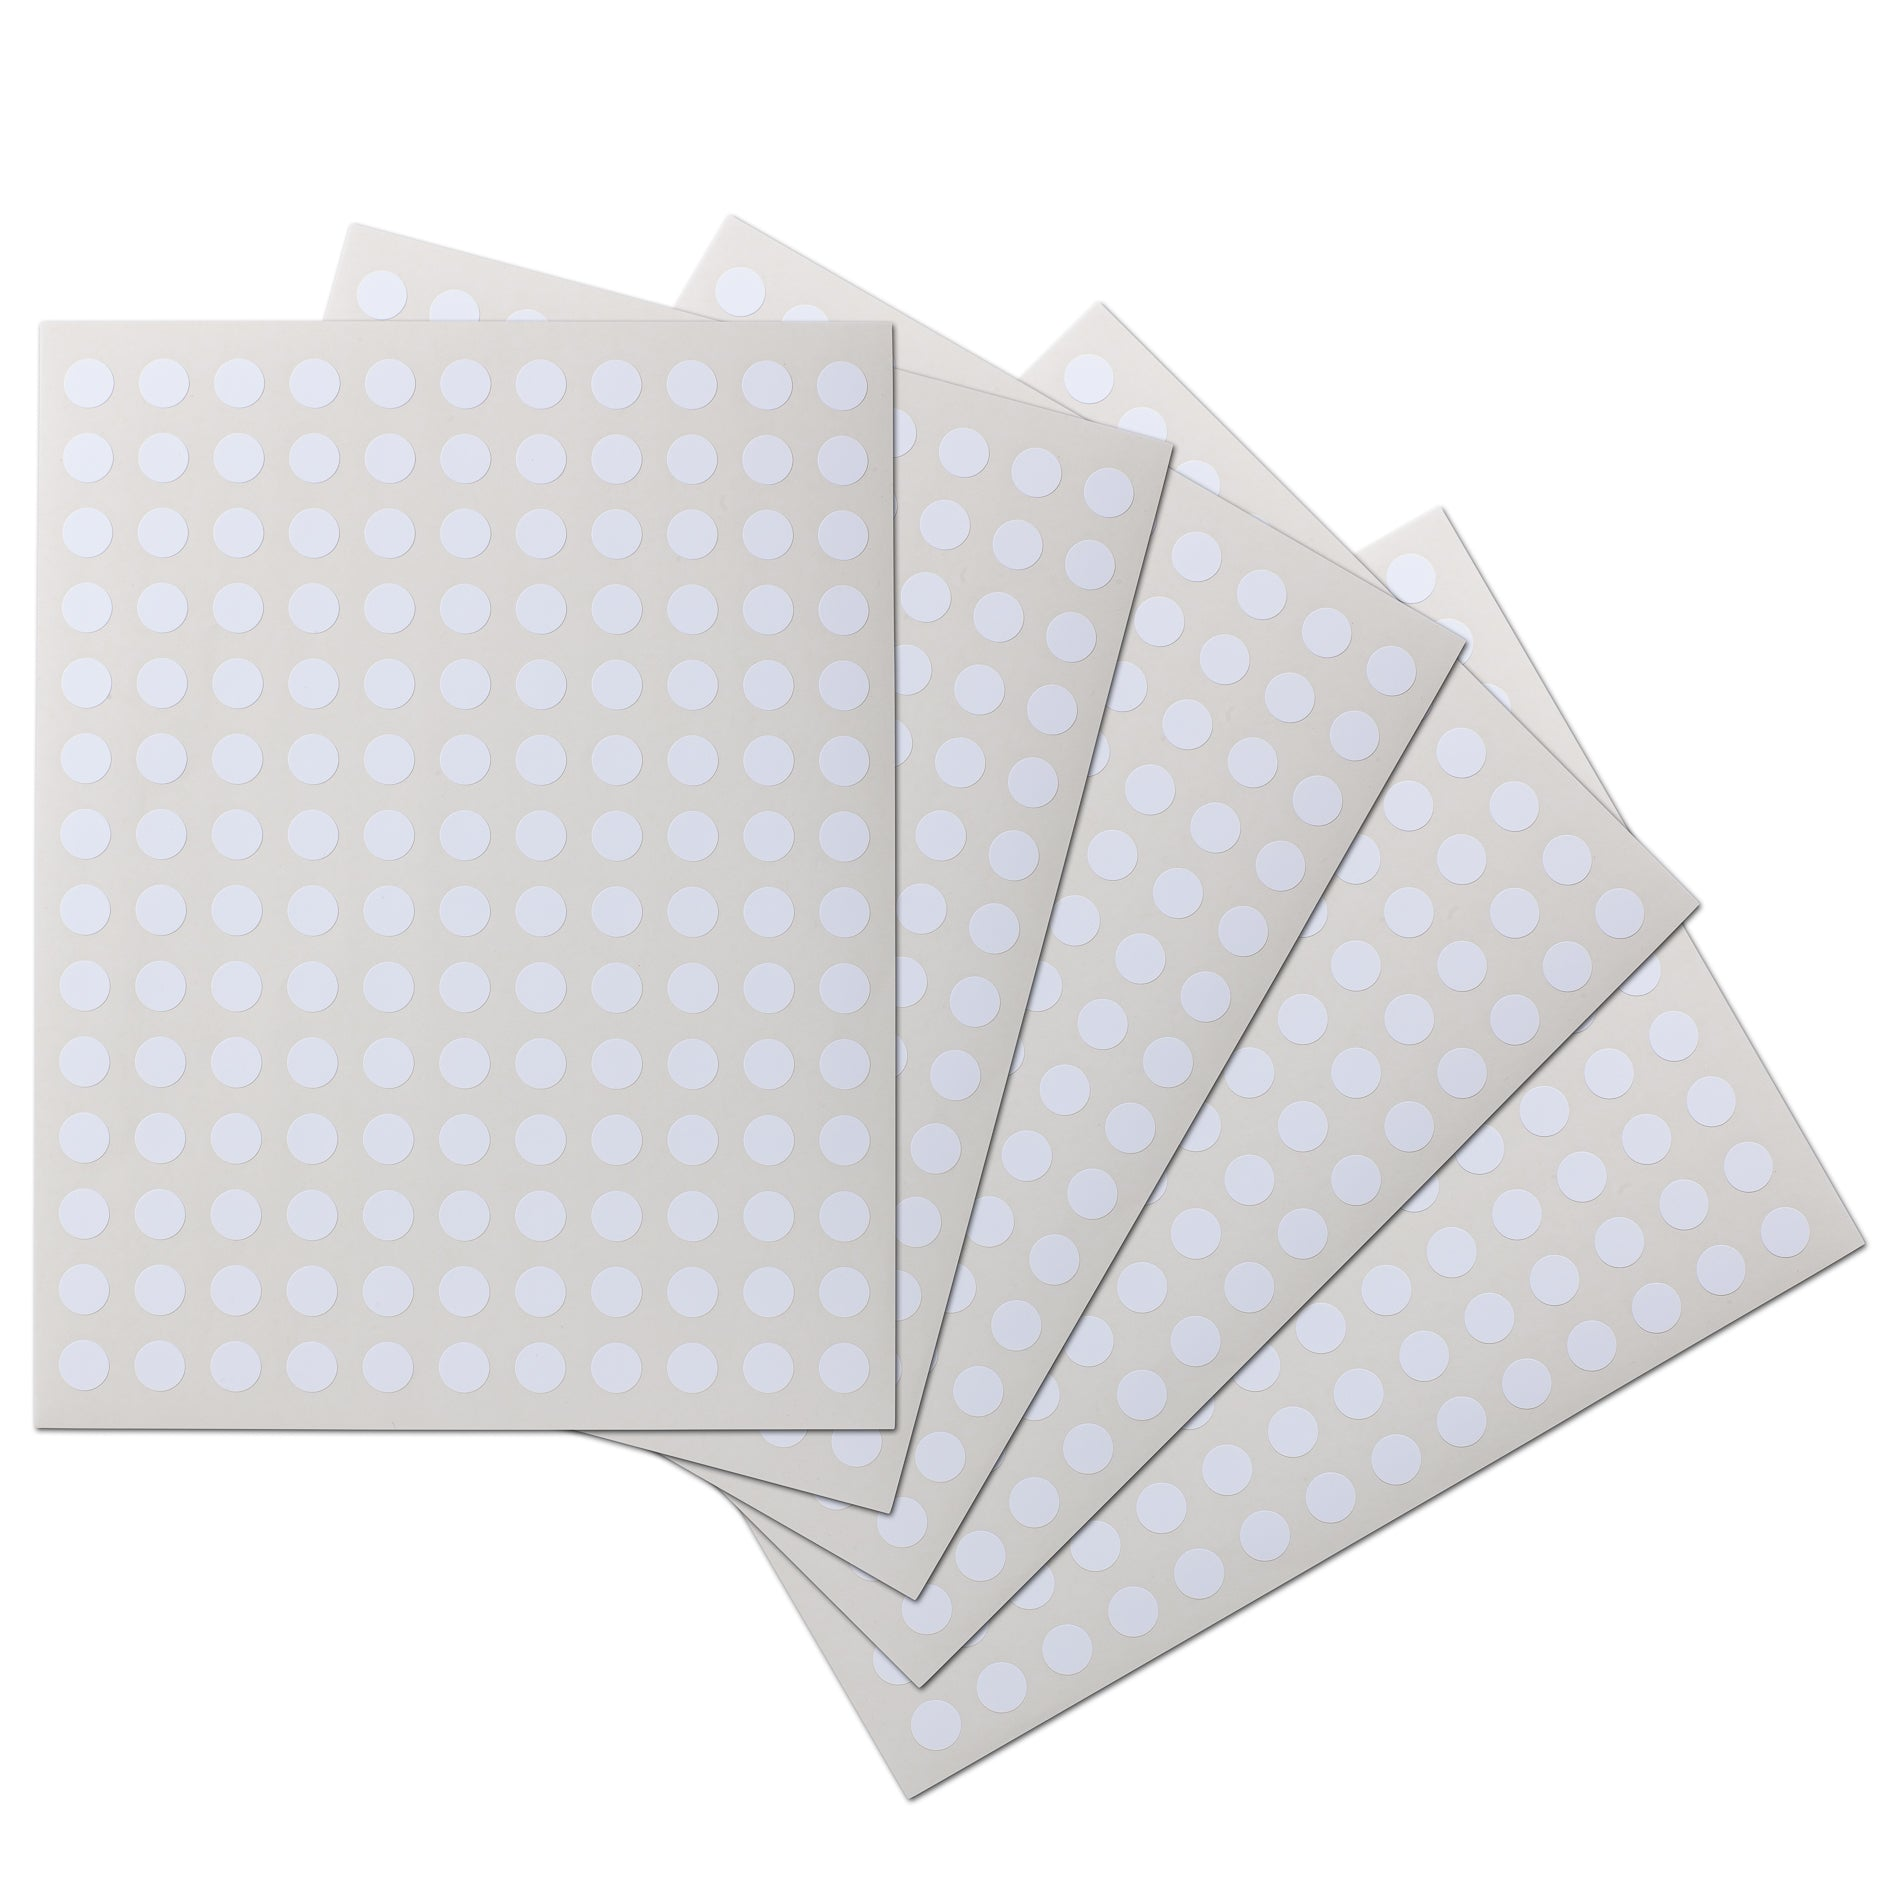 0.5 inch Circle Waterproof Labels